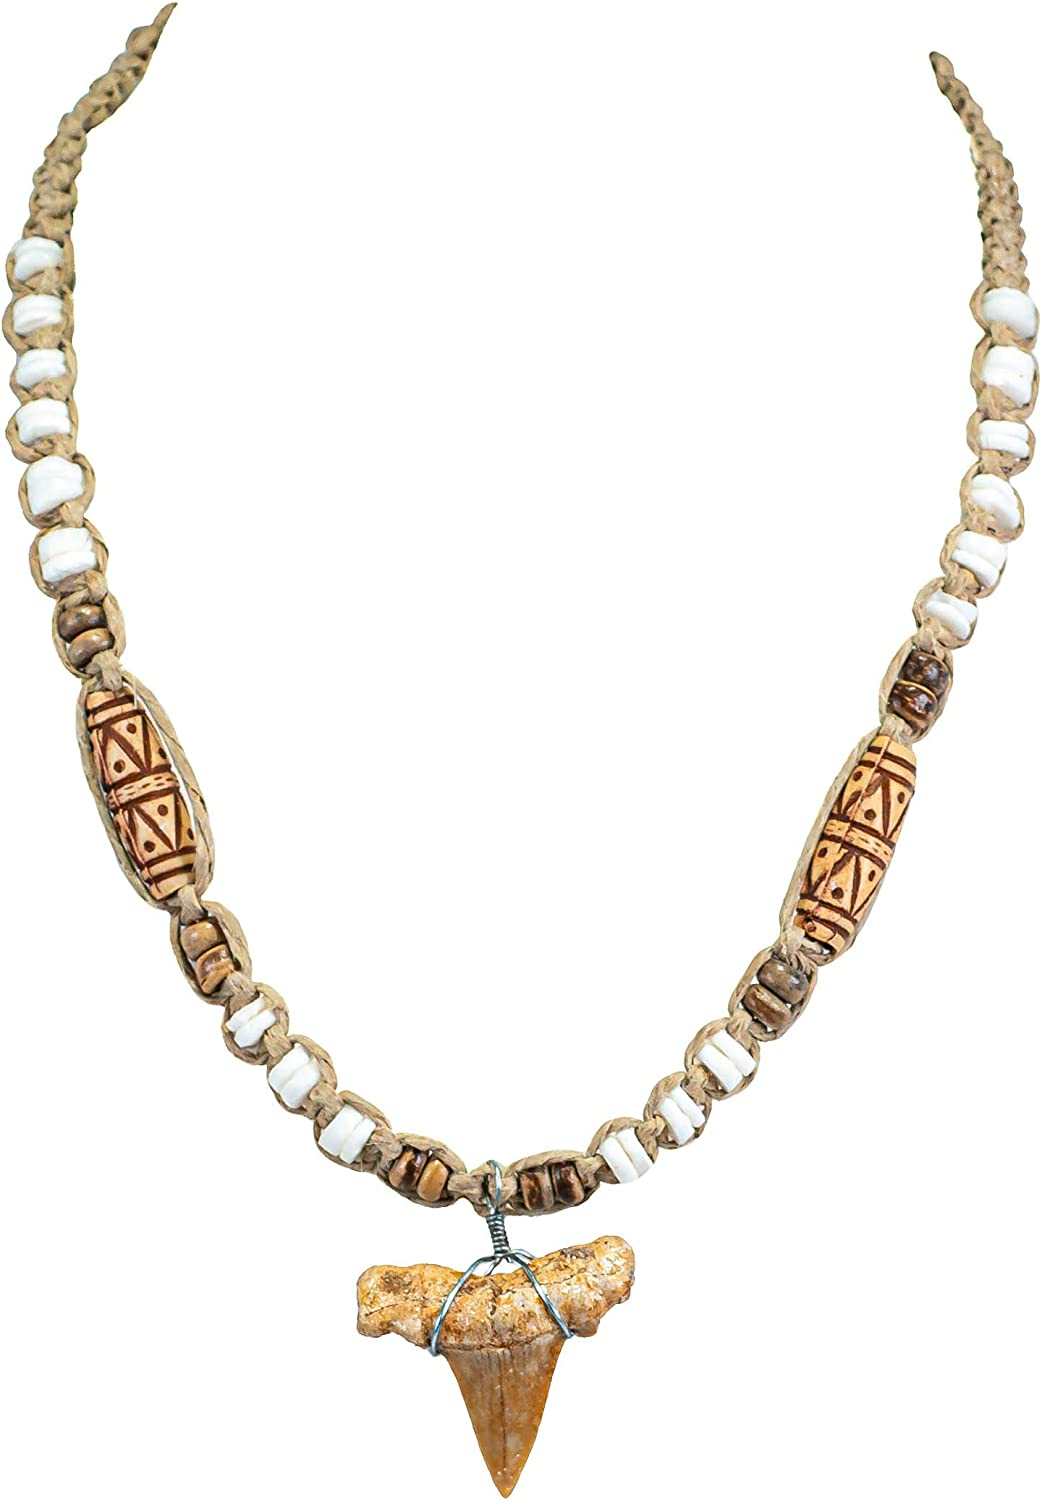 BlueRica Shark Tooth Pendant on Hemp Necklace with Puka Shell Beads (2S)